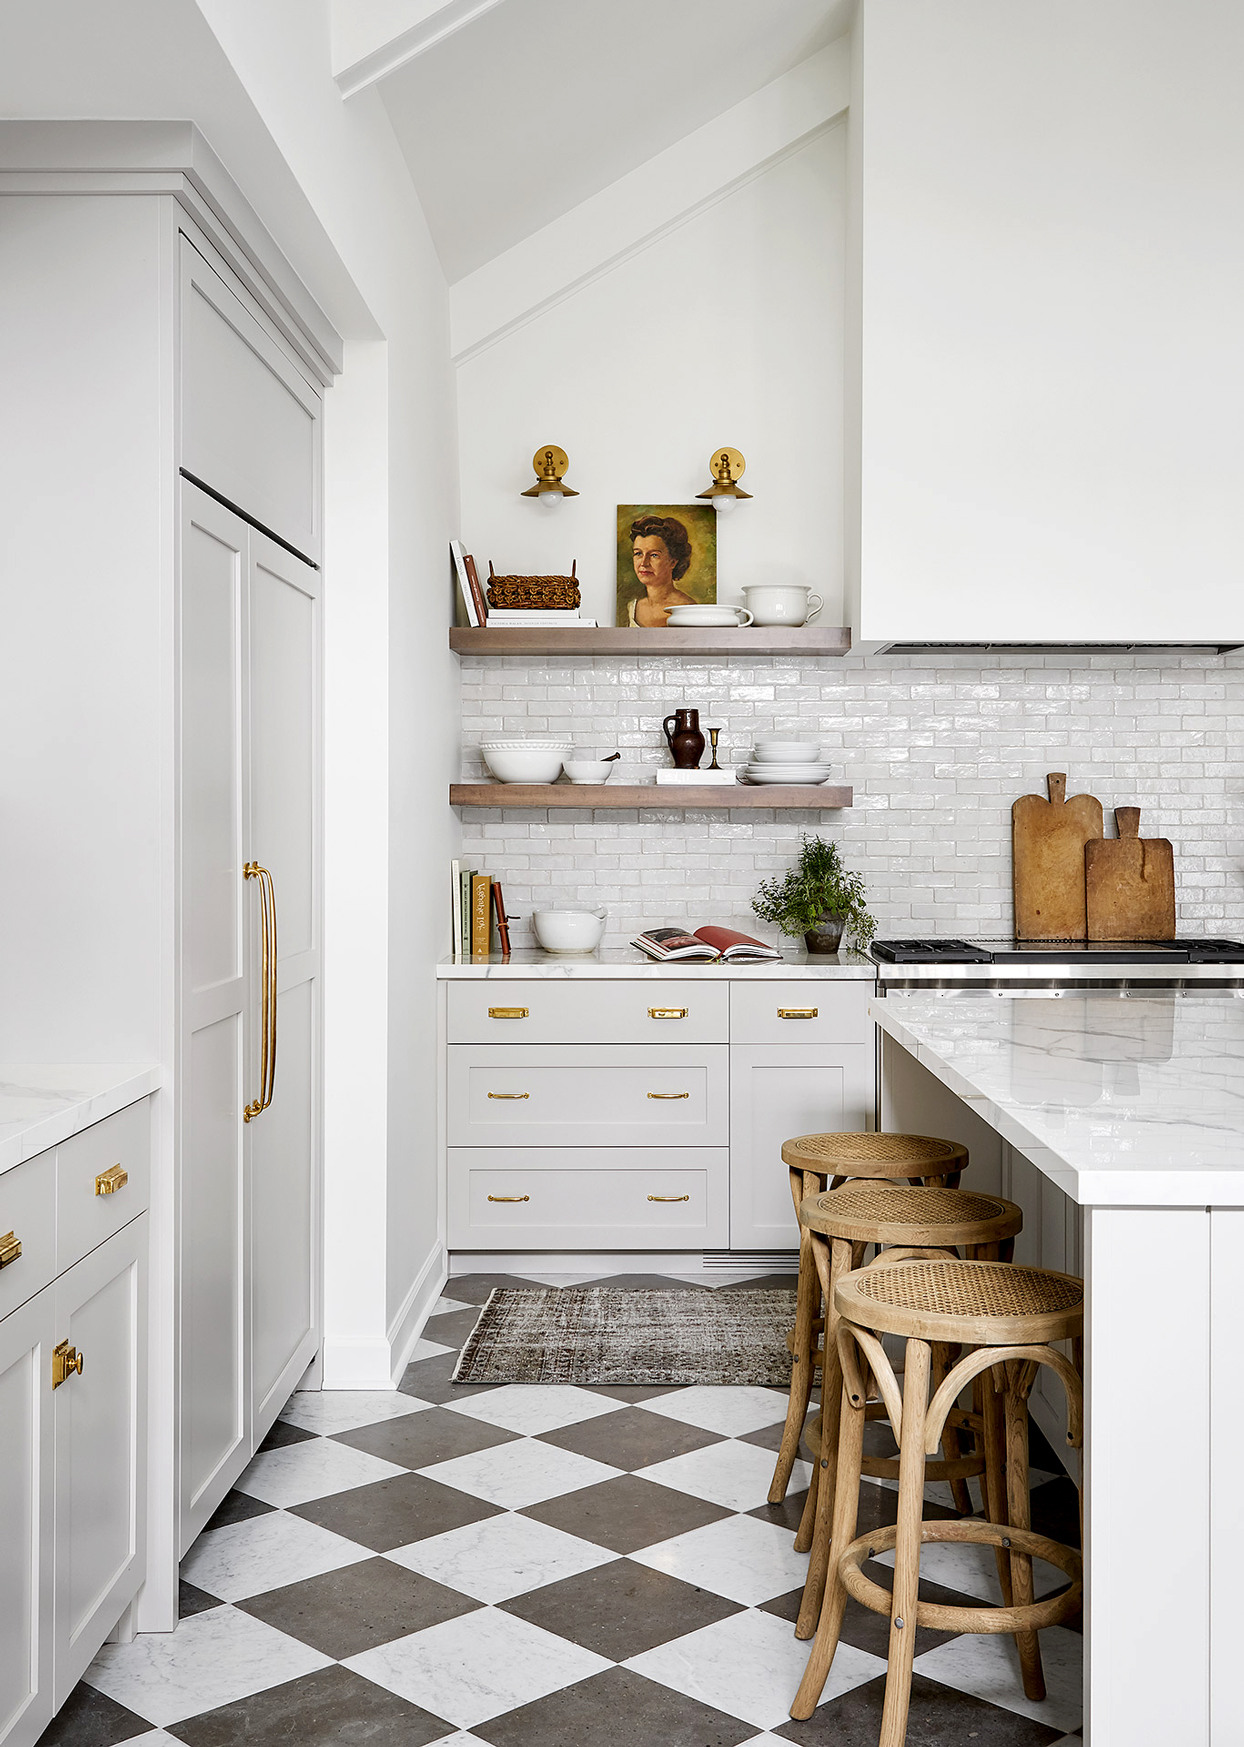 white kitchen with black and white checkerboard tile floors with quartz countertops and a large island